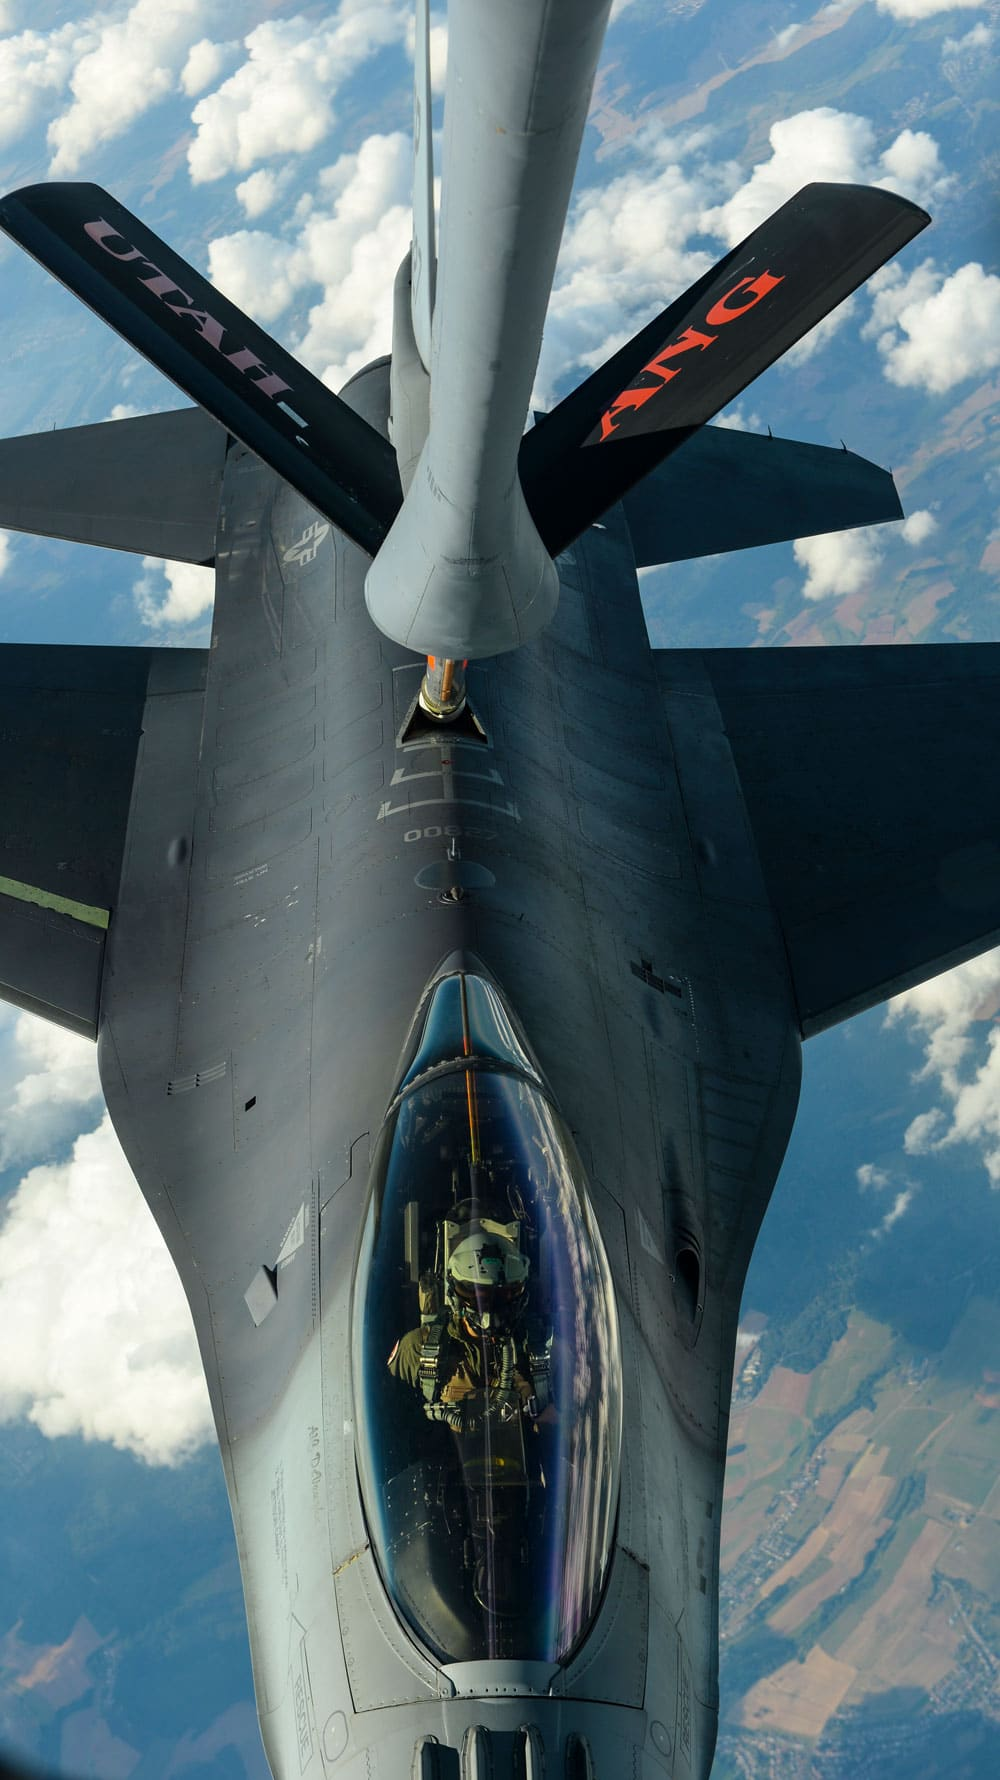 An F-16 Fighting Falcon, assigned to the 52nd Fighter Wing at Spangdahlem Air Base, Germany, receives fuel from a KC-135 Stratotanker over Ramstein AB, Germany. Utah Air National Guard's 191st Air Refueling Squadron conducted aerial refueling during a routine training sortie.